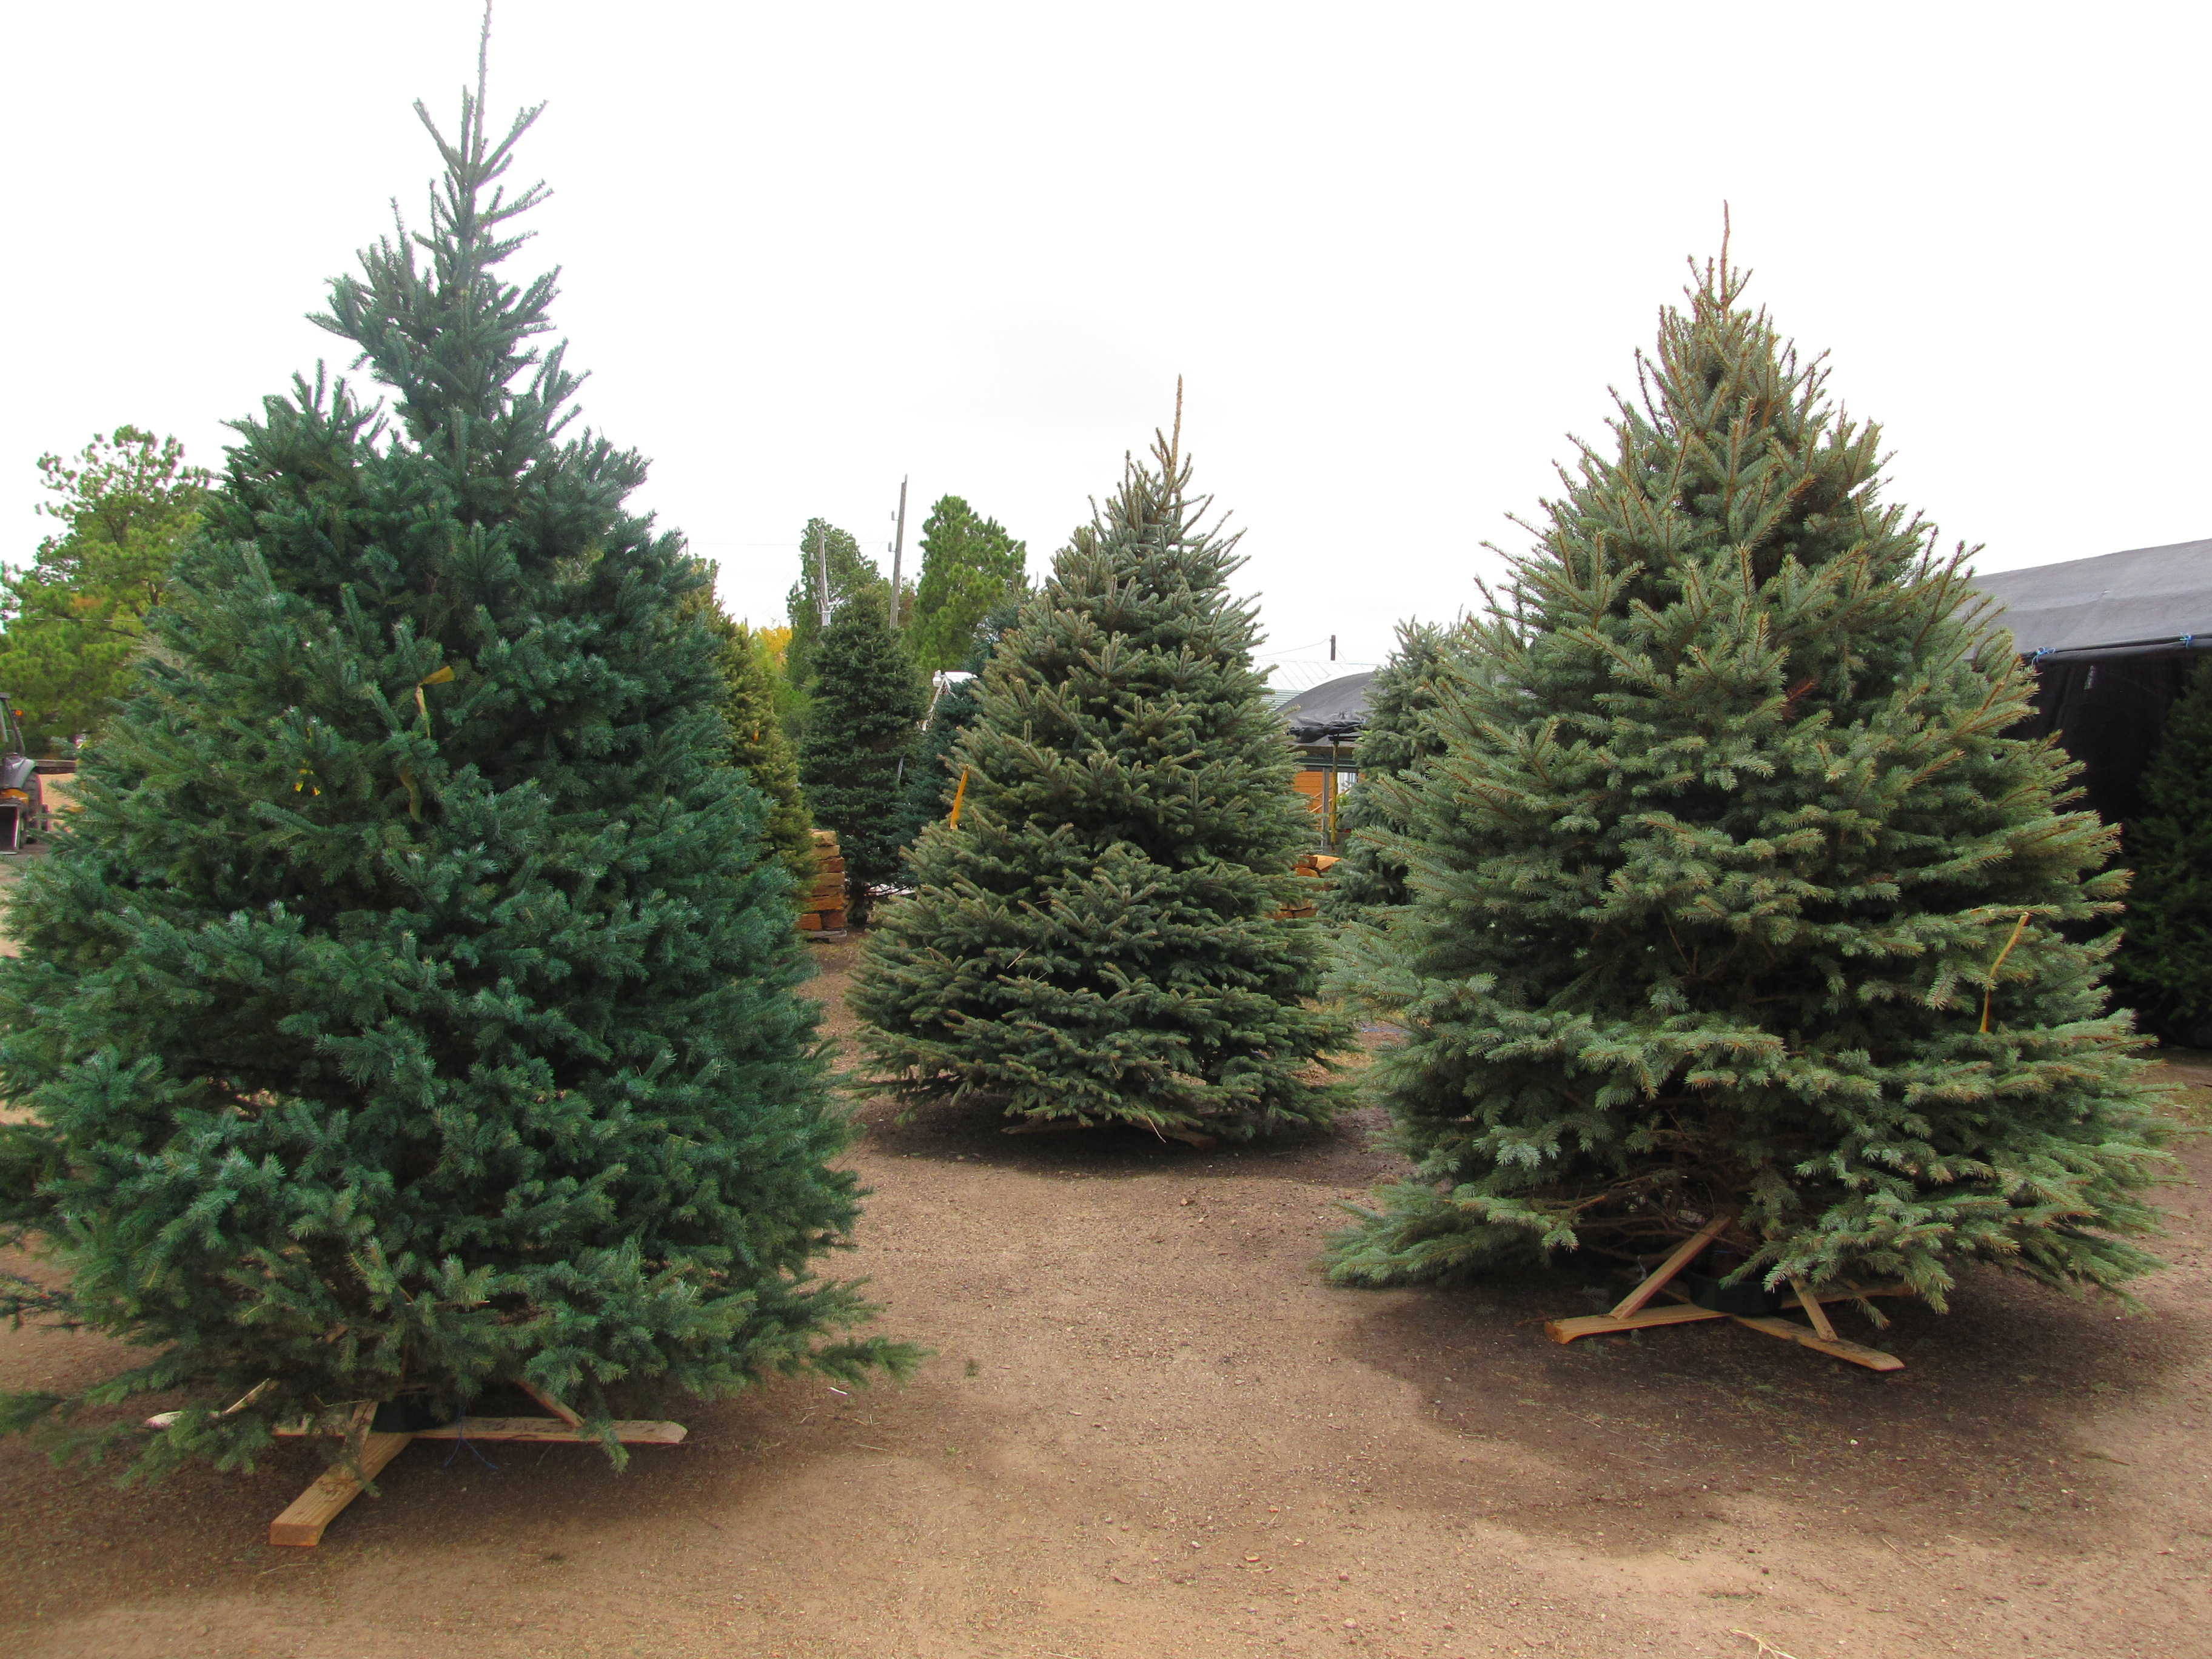 Seasonal Products including Christmas Trees and Fireworks at Madison Gardens Nursery, Spring, TX.